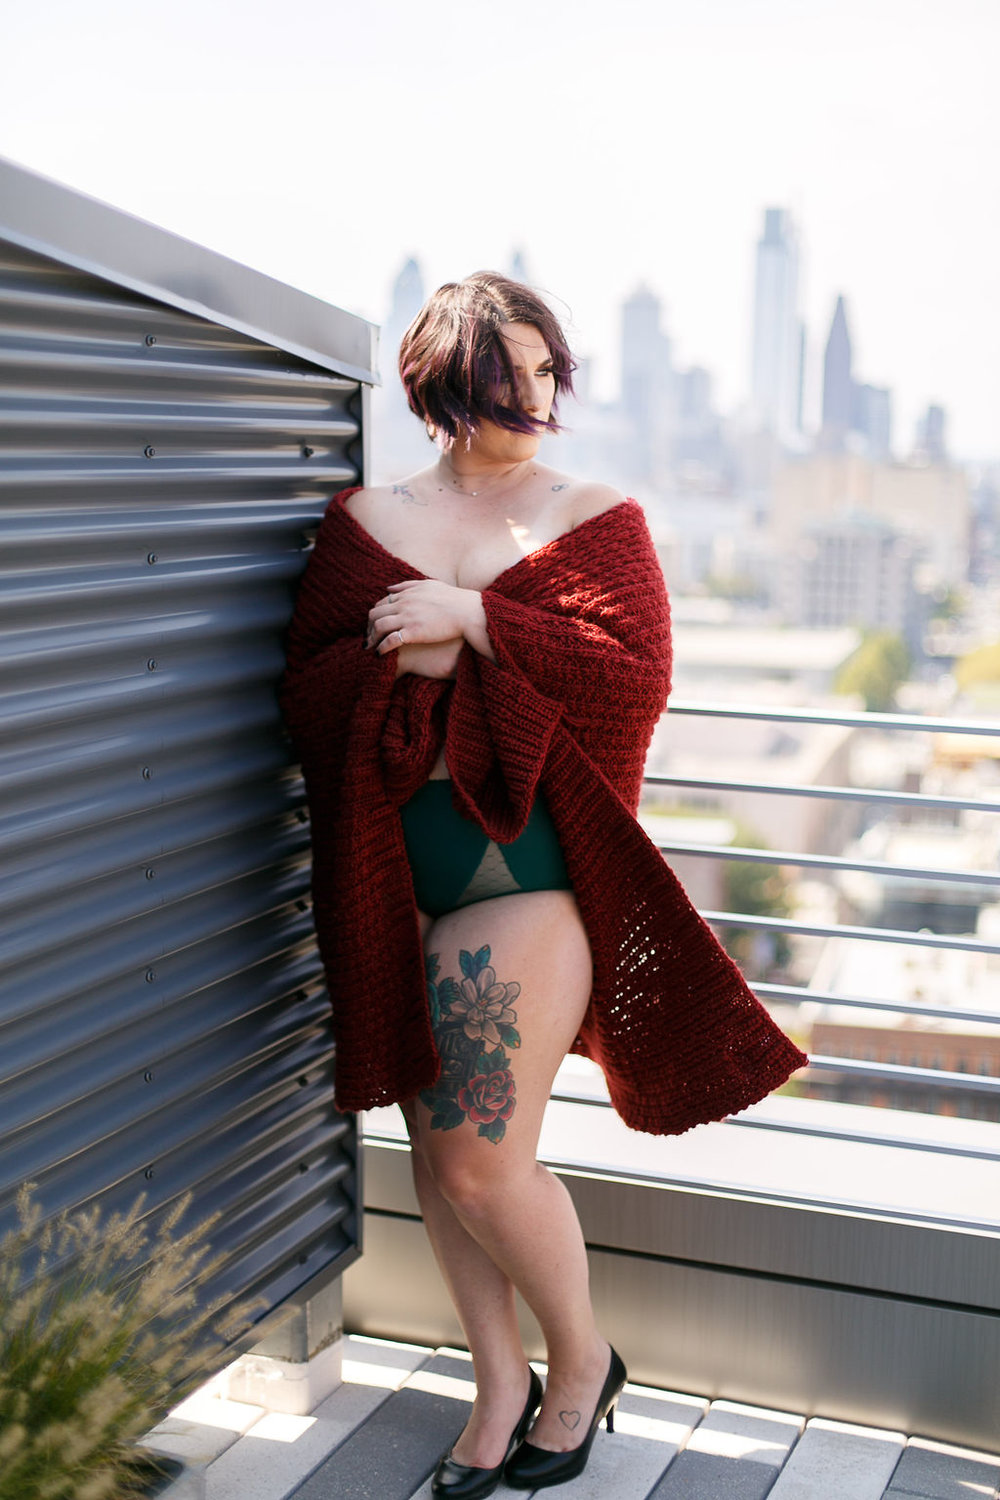 Philly Outdoor Rooftop Boudoir Session by Swiger Photography 40.jpg